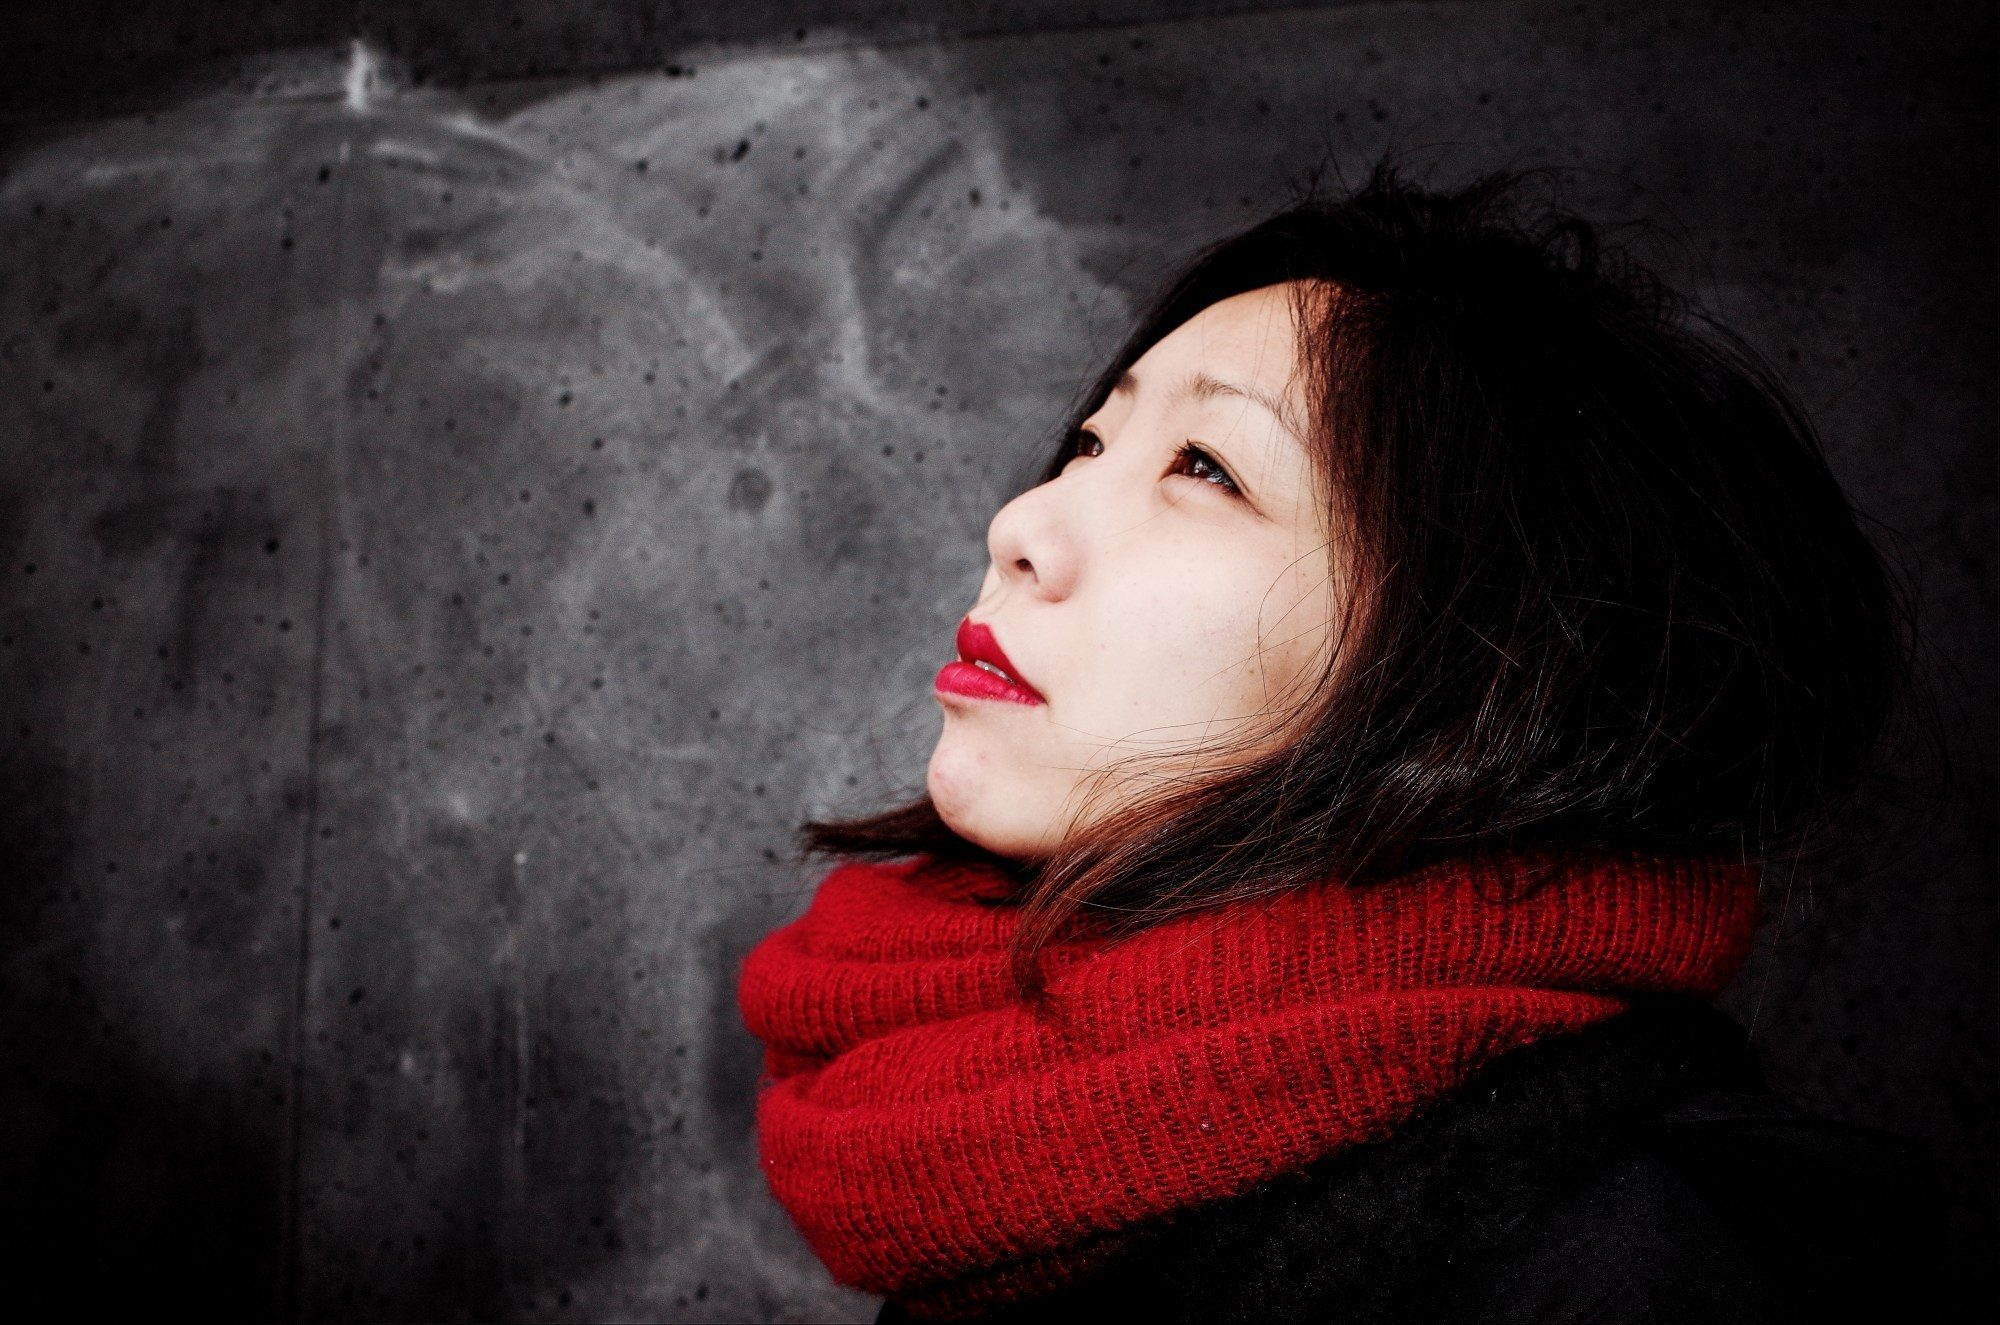 Cindy in red scarf, Berlin